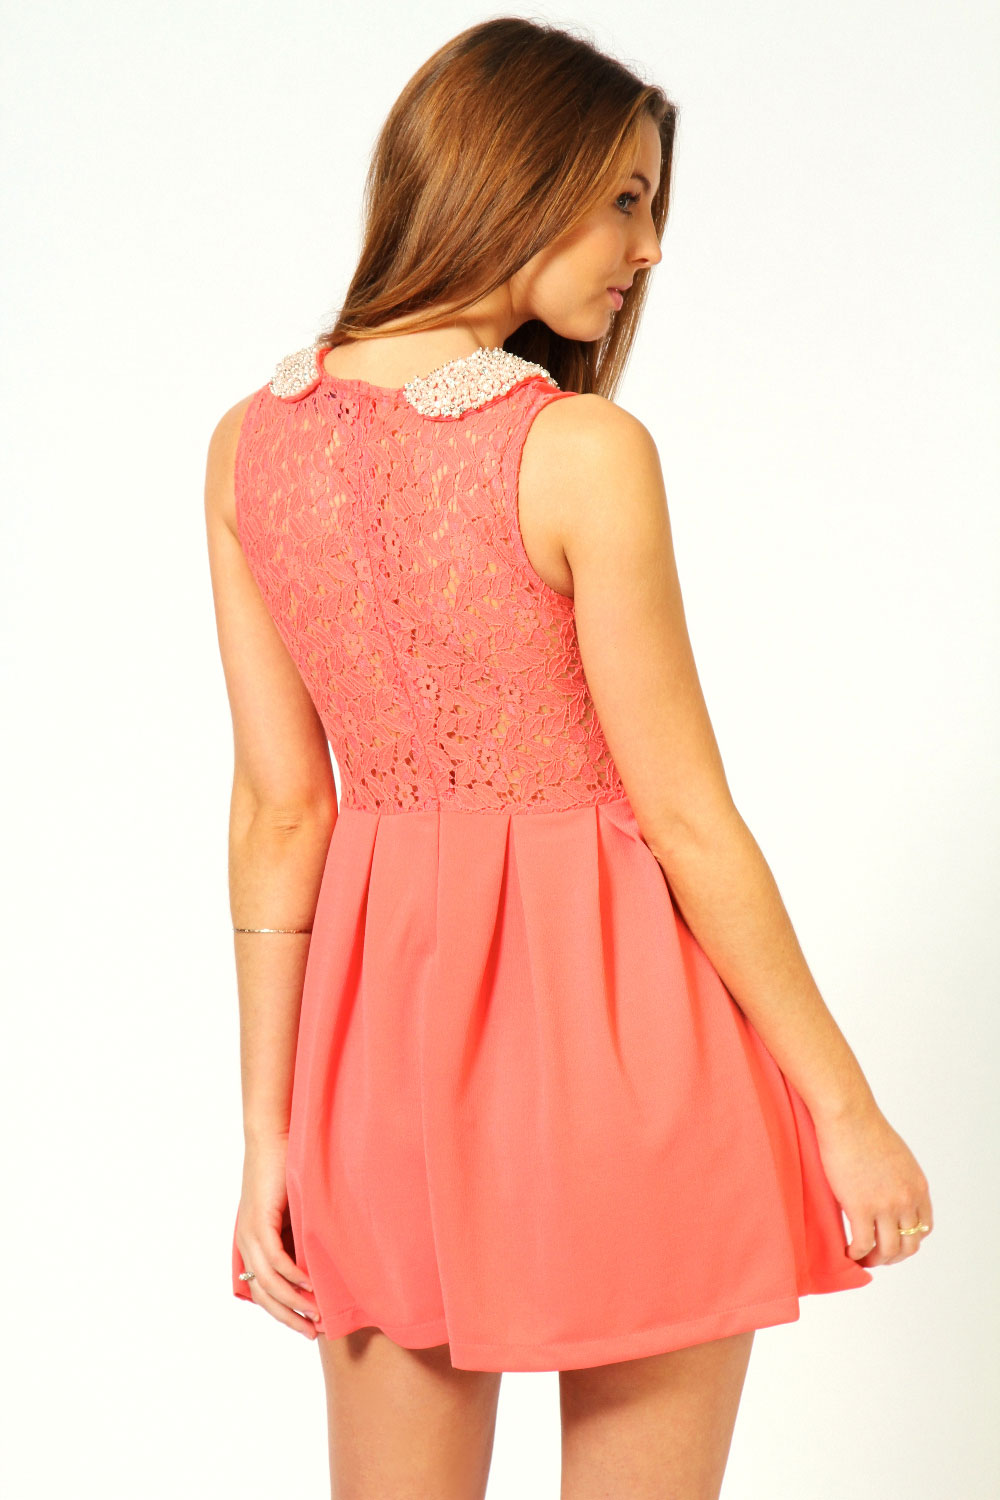 Anna Heavy Embellished Lace Back Skater Dress